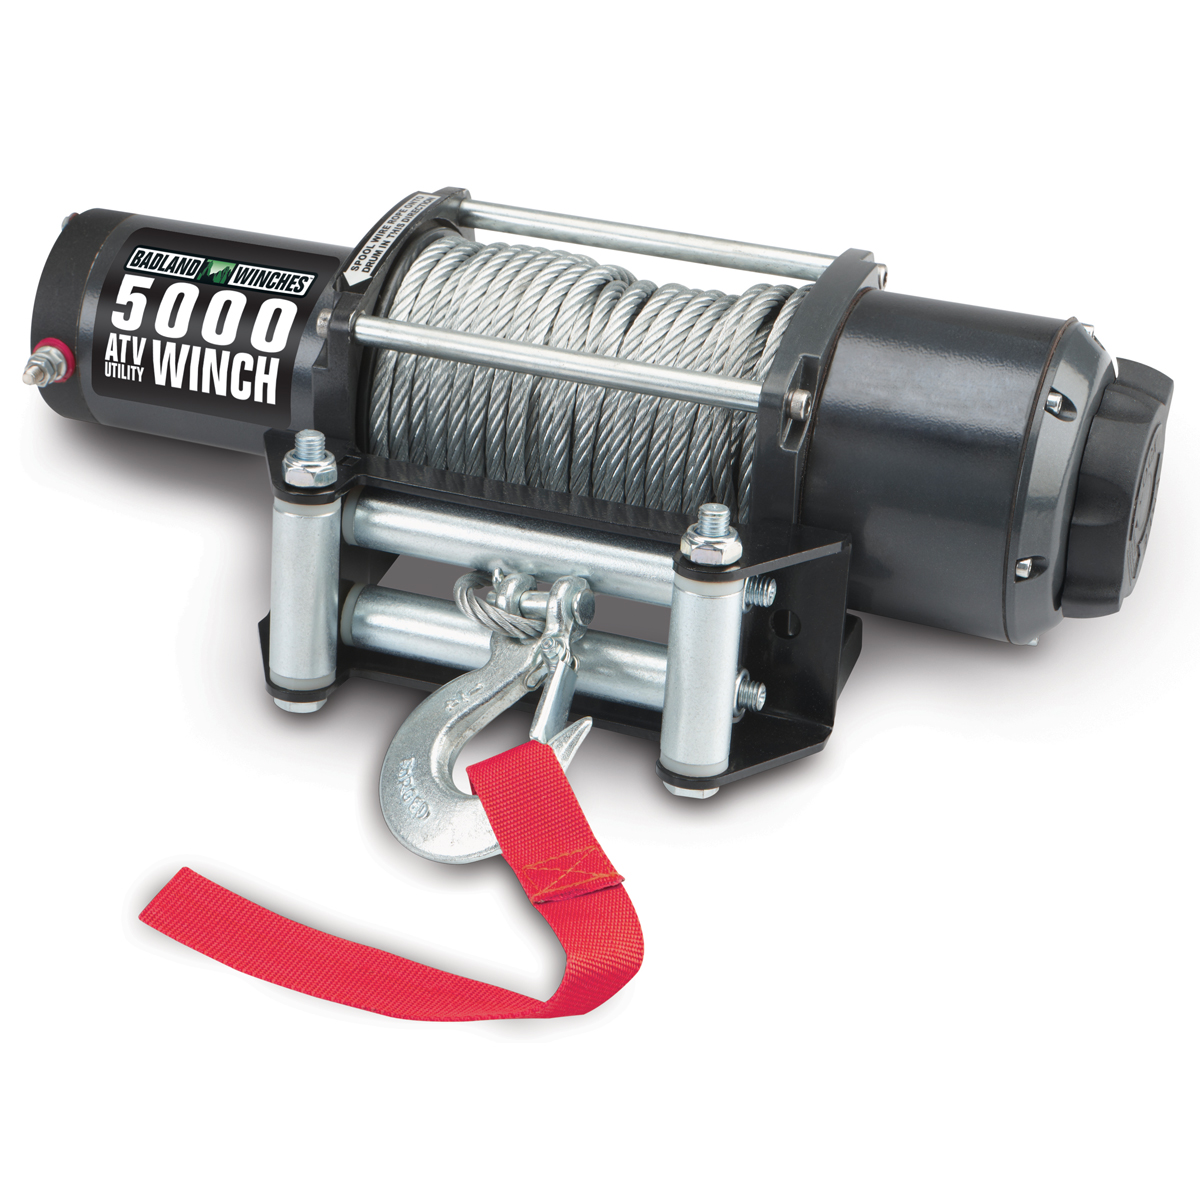 hight resolution of 5000 lbs atv utility electric winch with automatic load holding brake